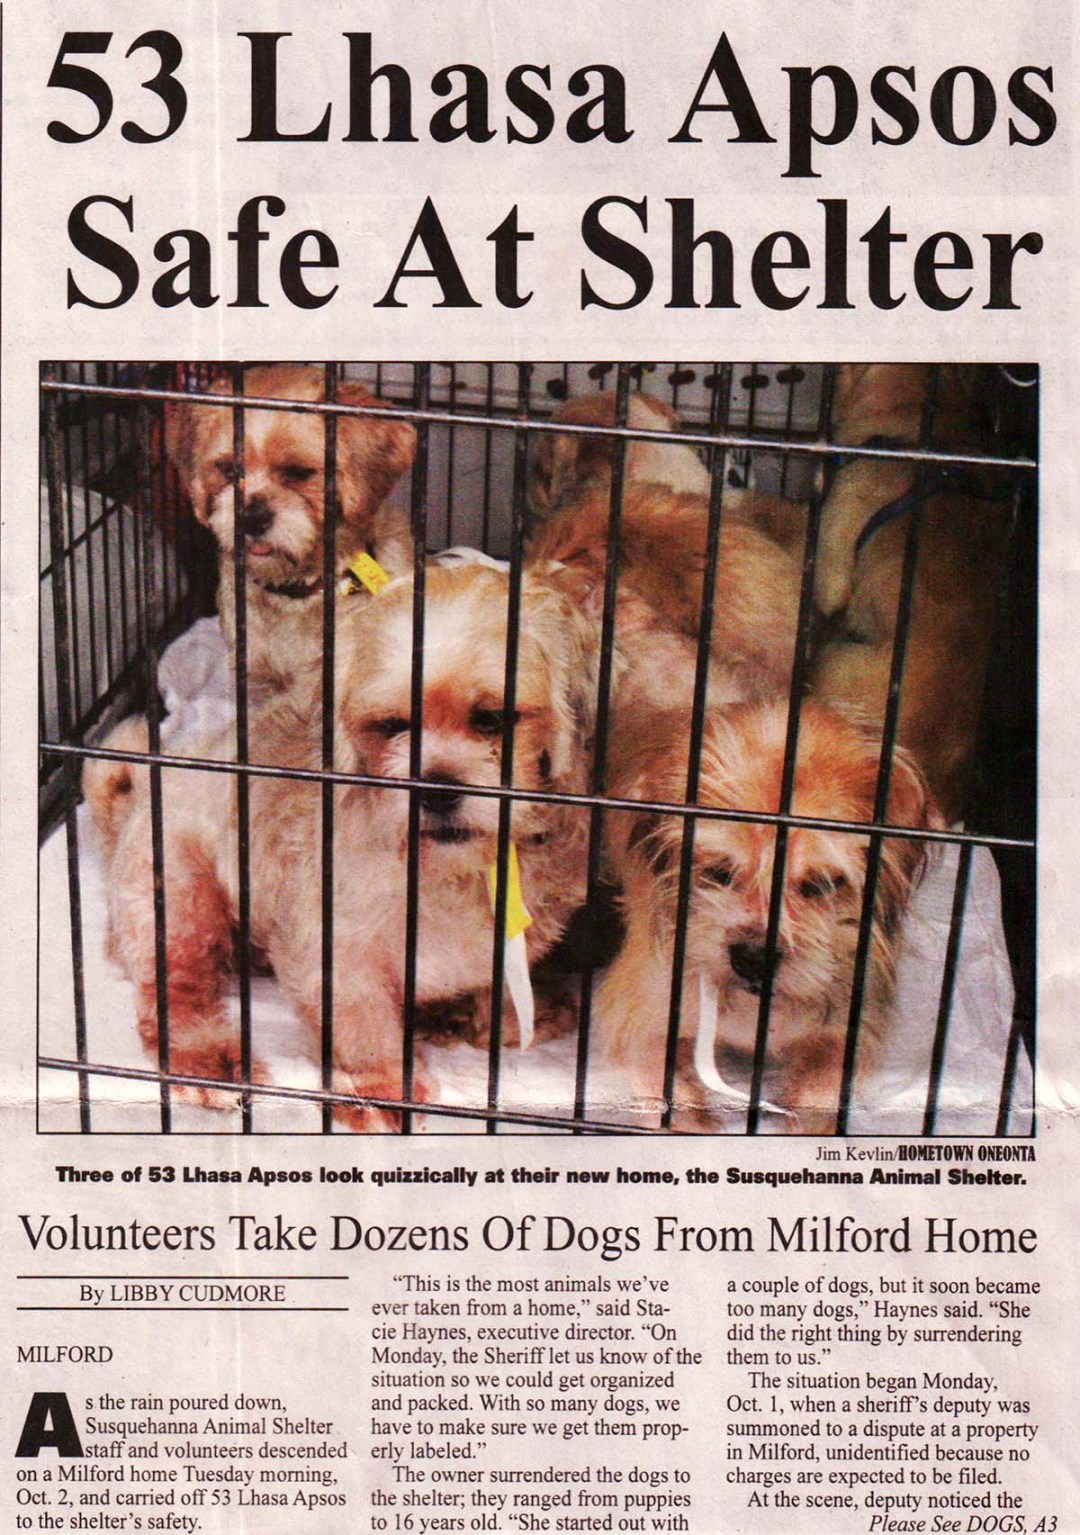 53 Lhasa Apso dogs rescued from home in Milford NY